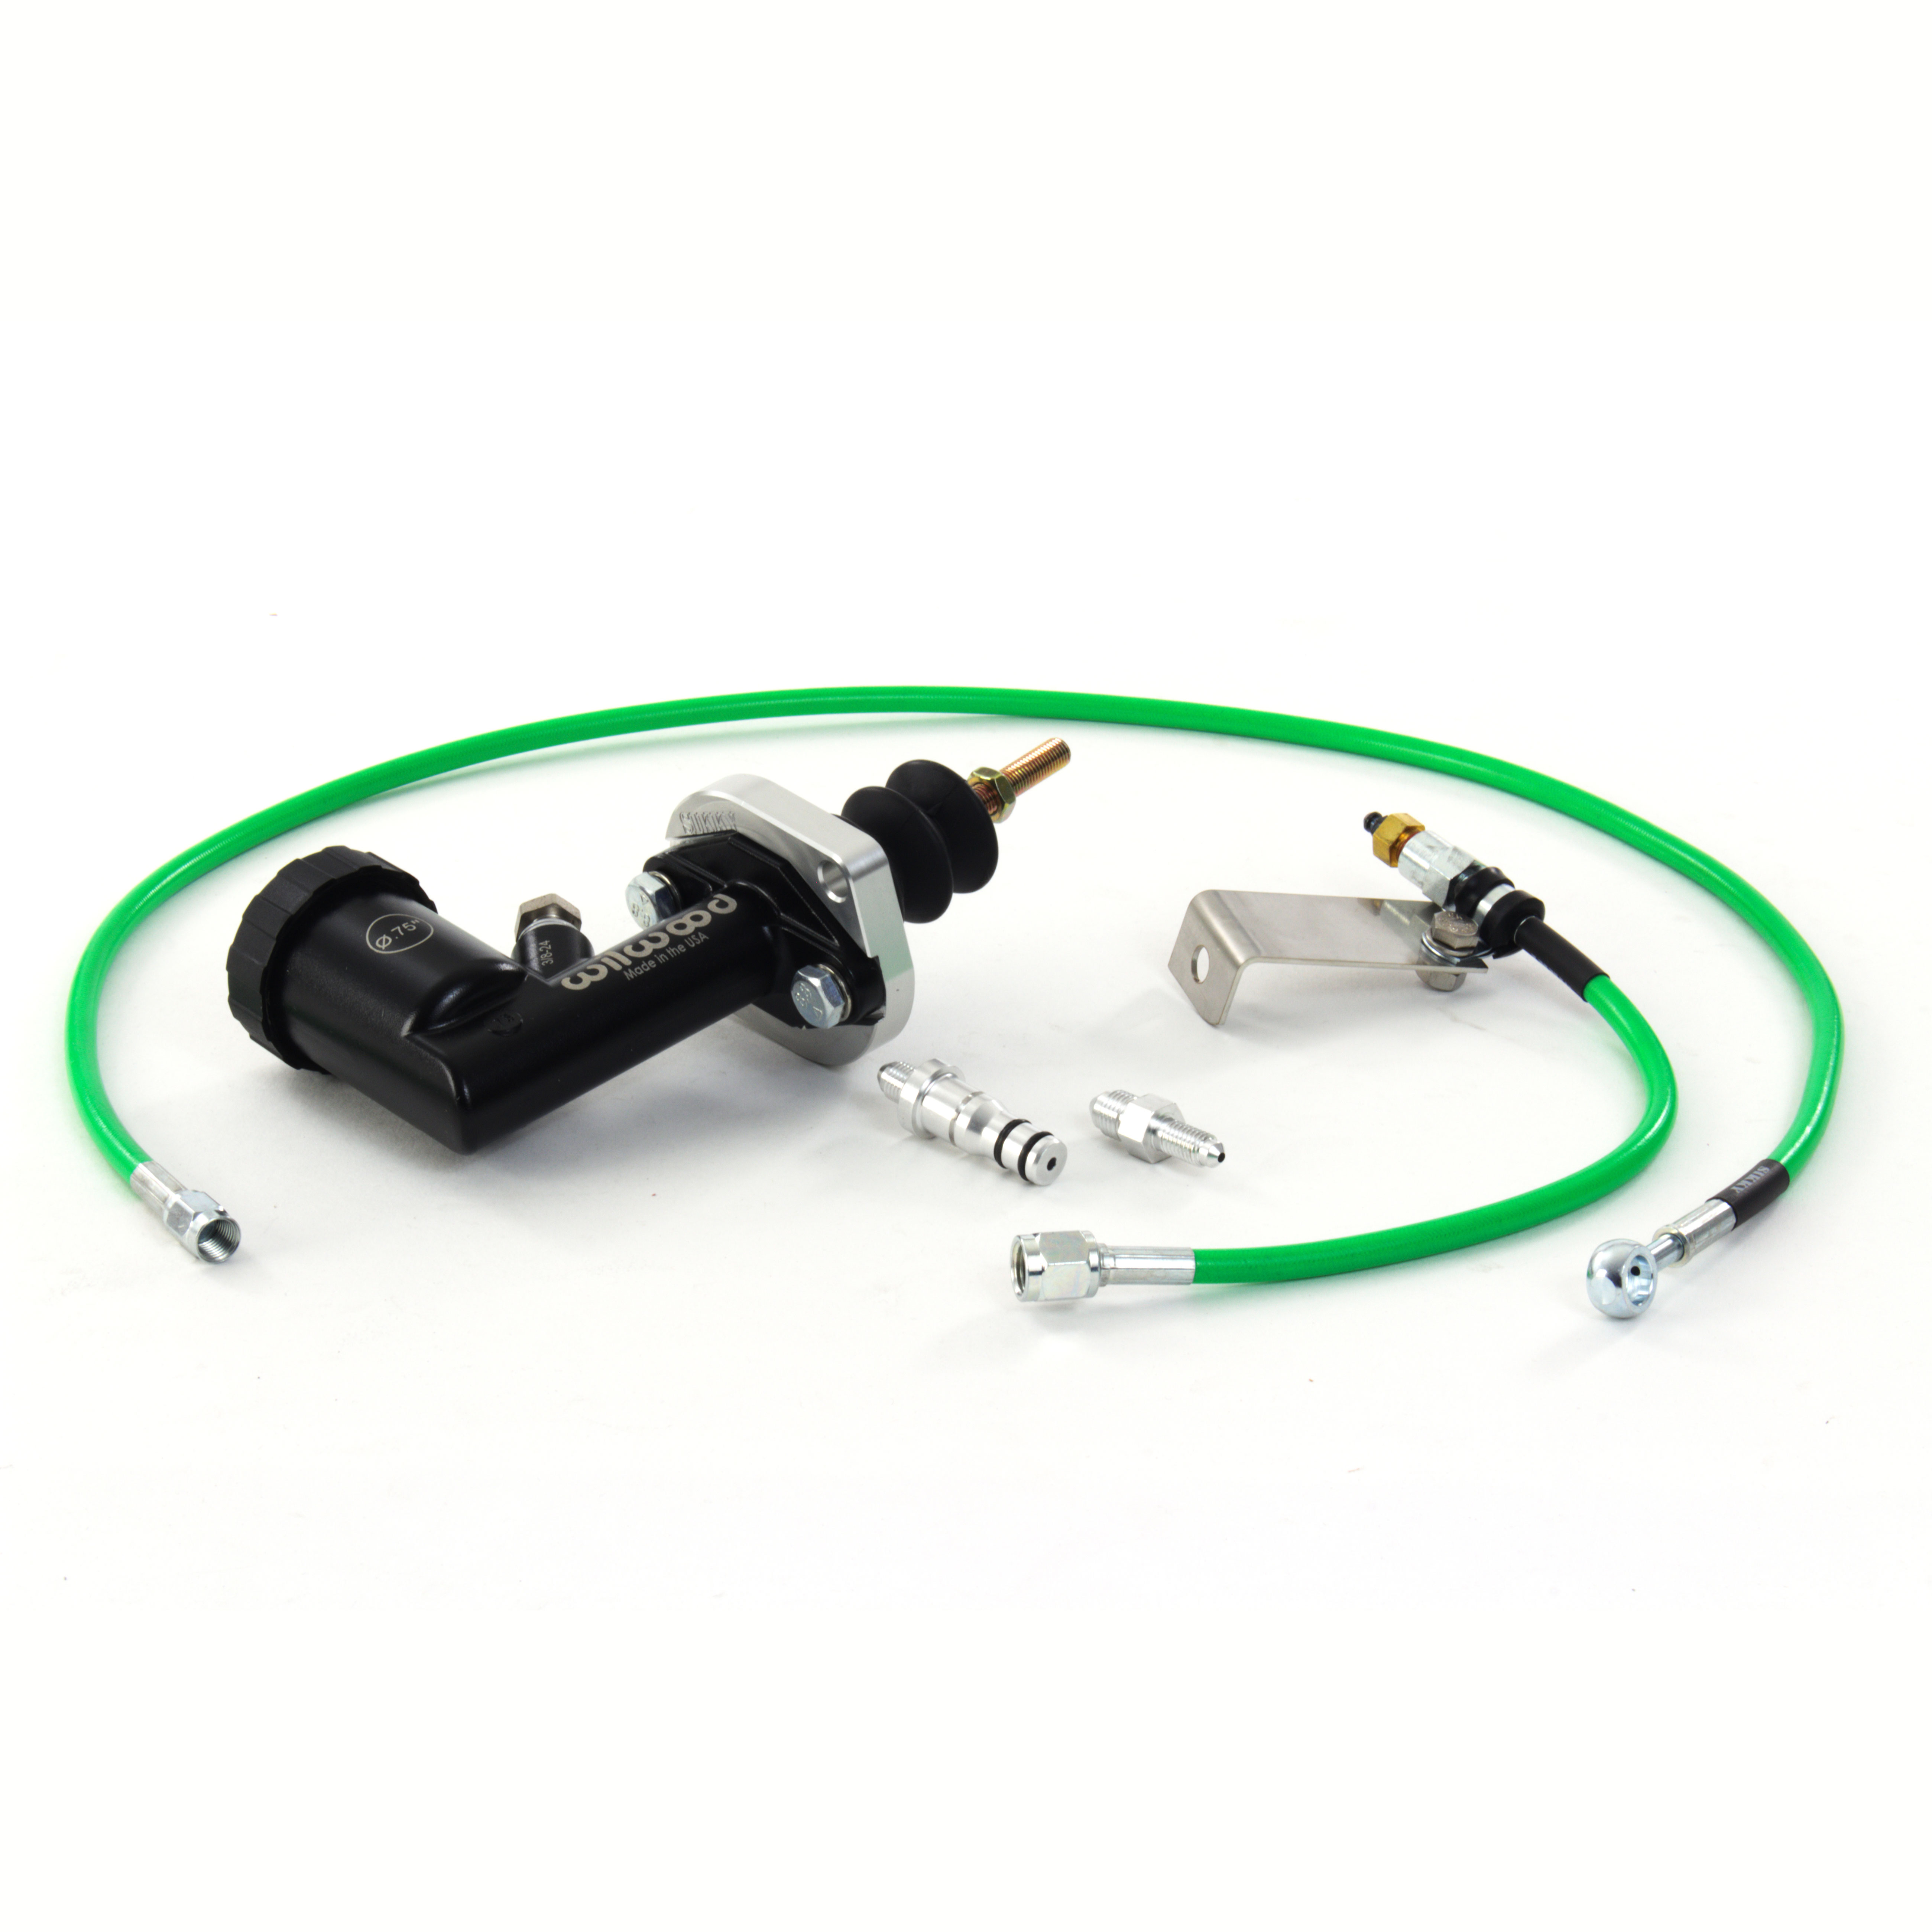 Sikky 240sx LSx TR6060 Master Cylinder Conversion Kit